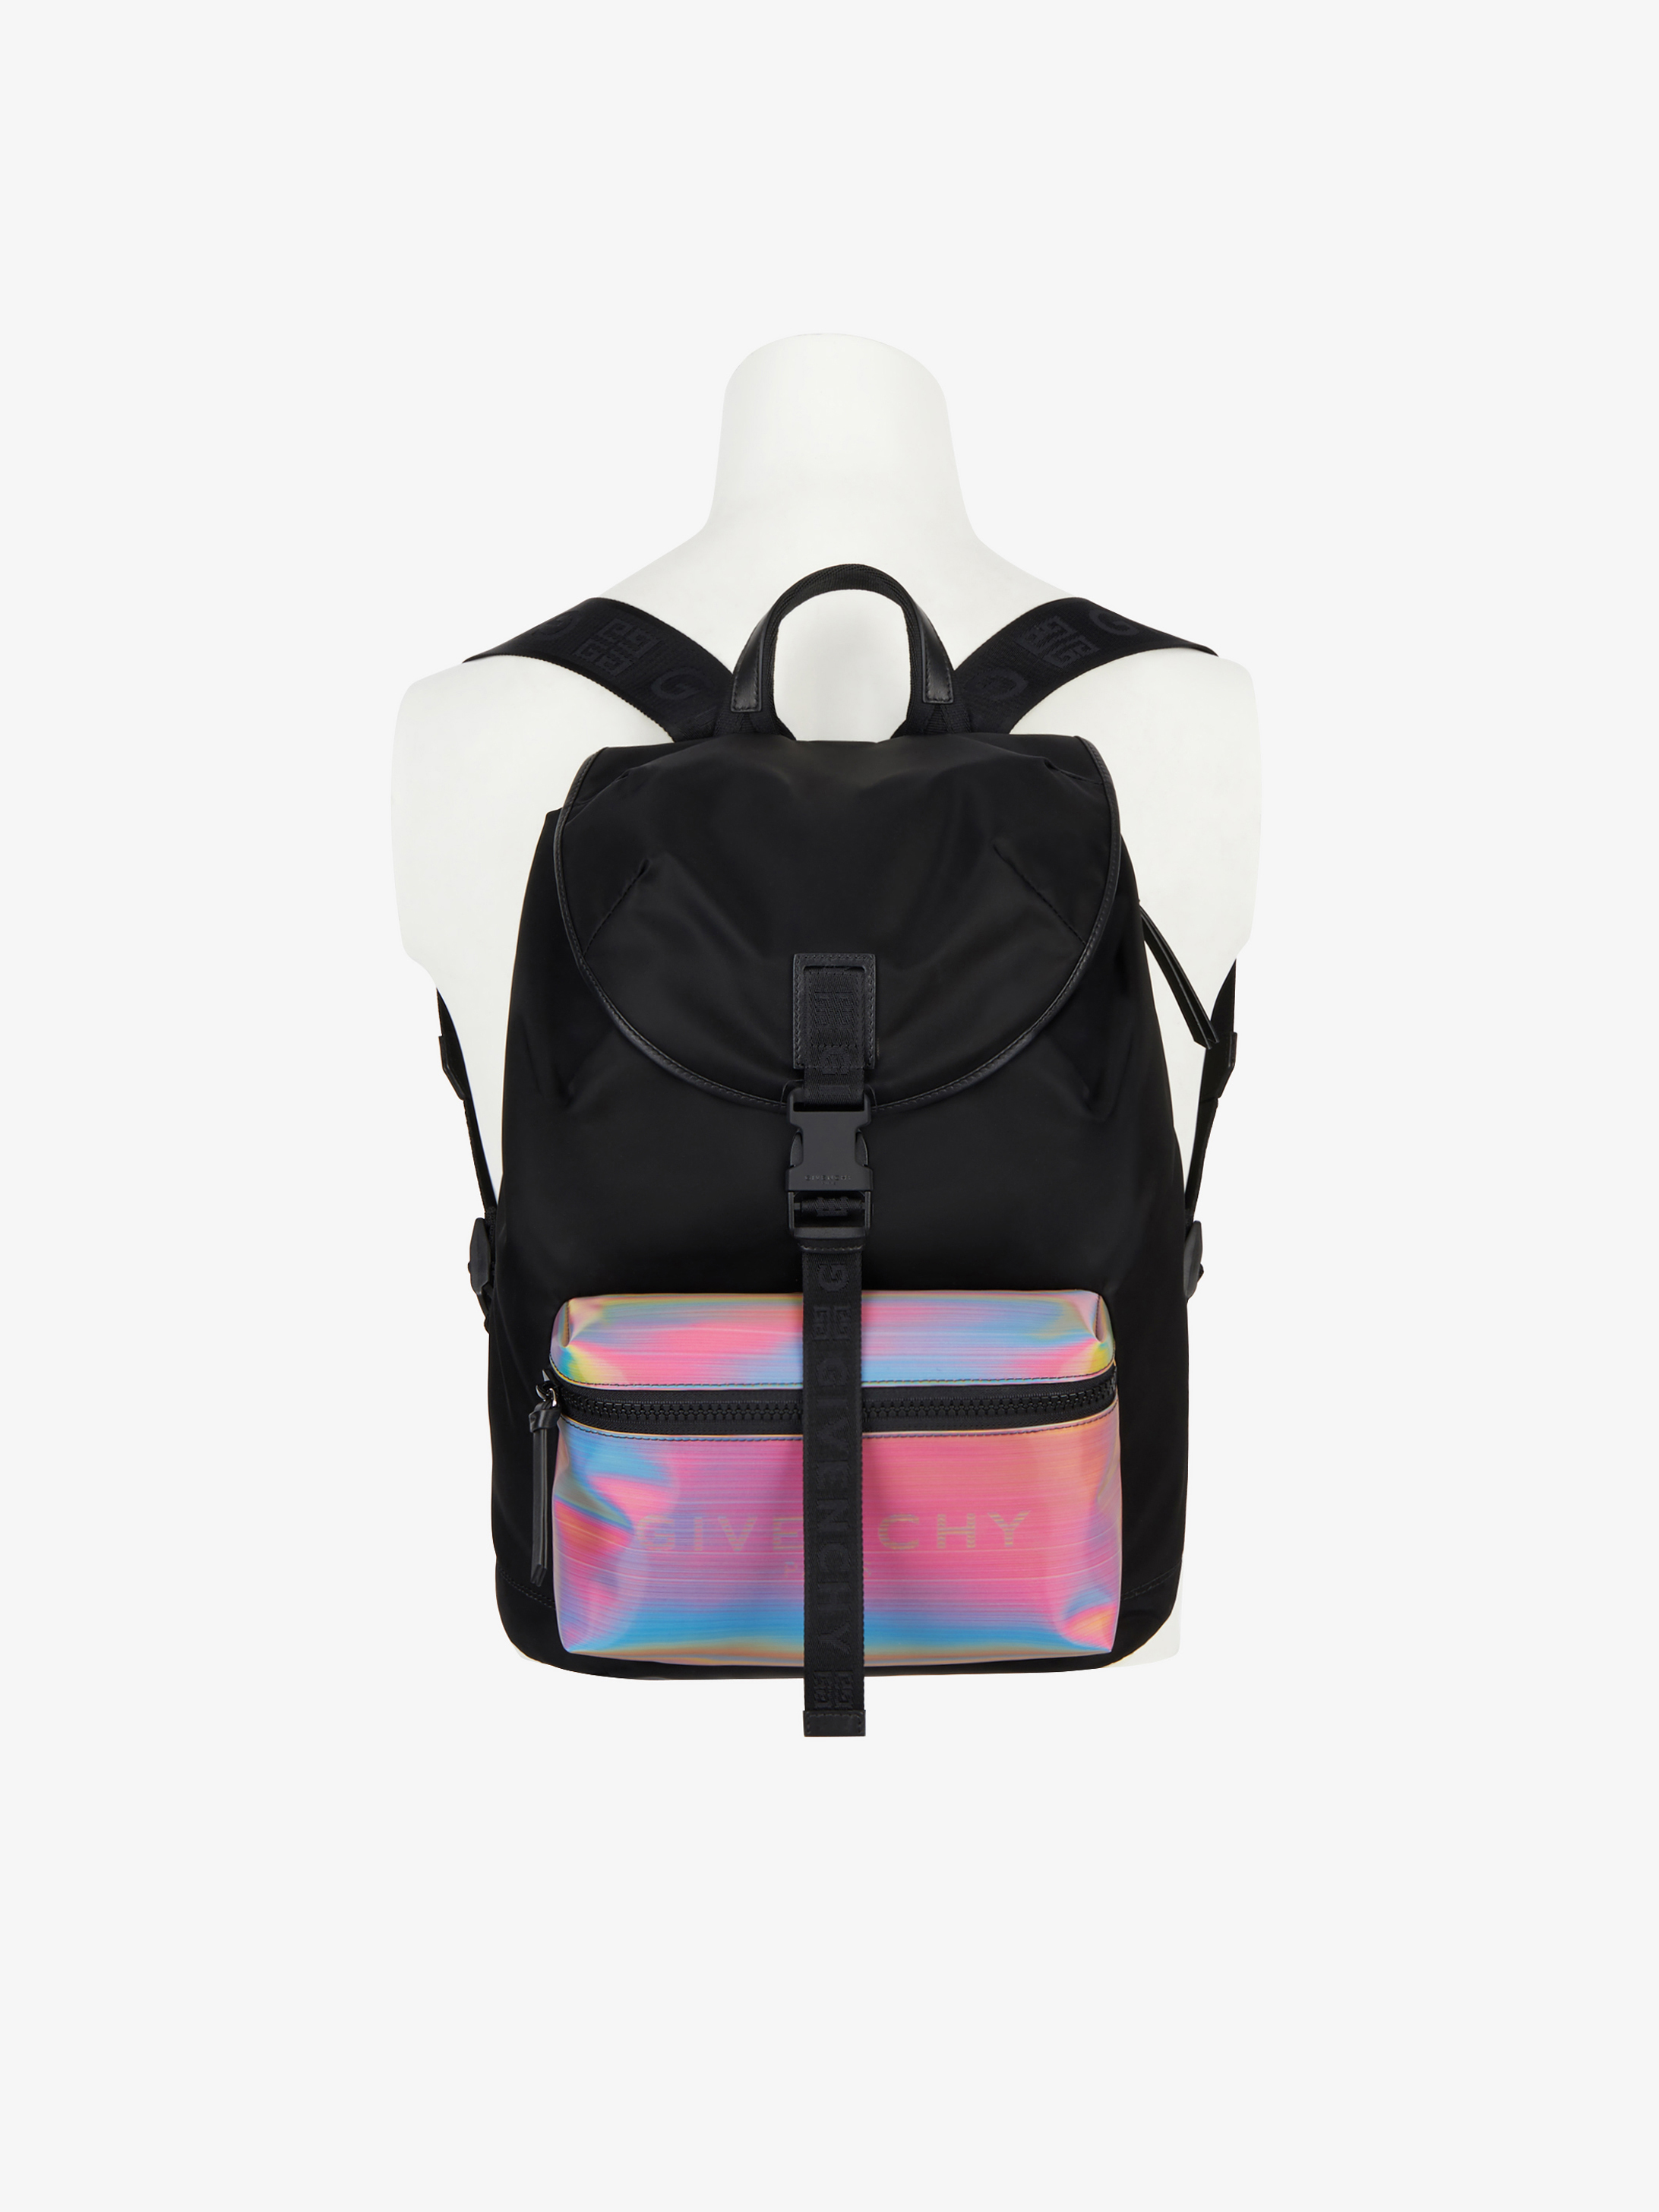 GIVENCHY backpack in nylon with holographic